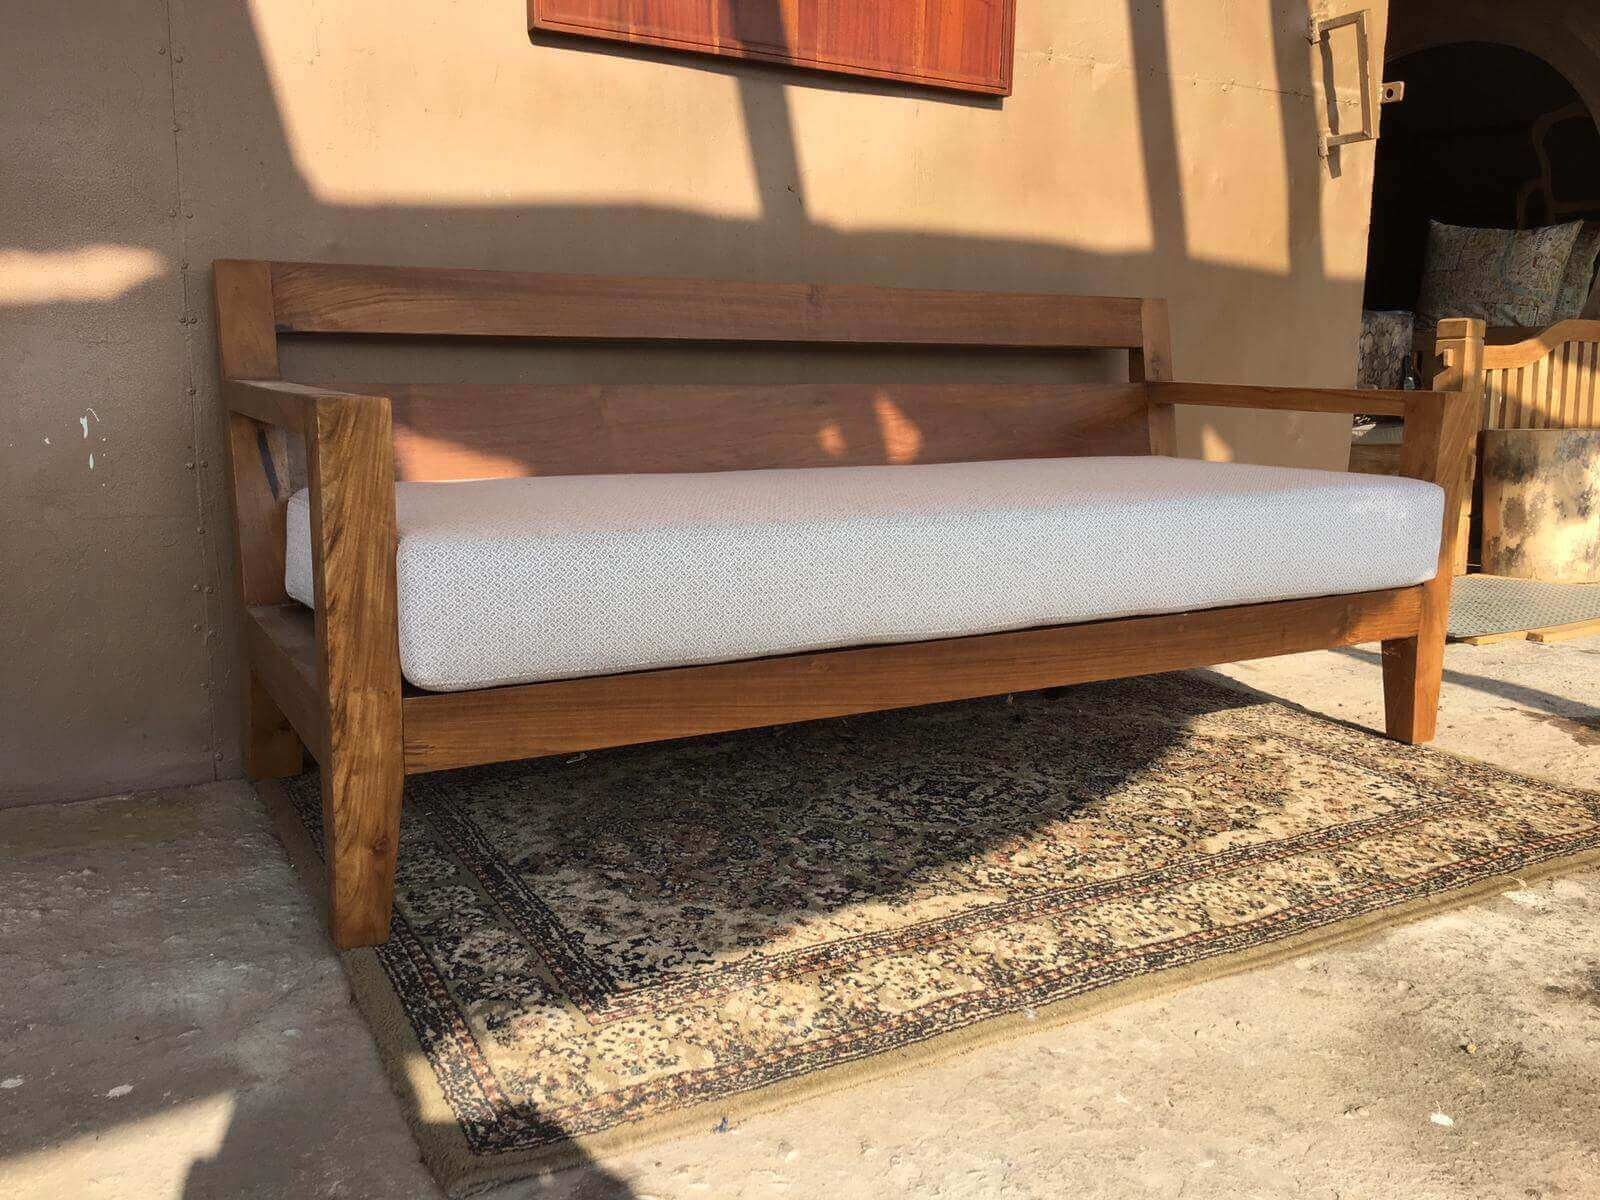 bench ord.2246